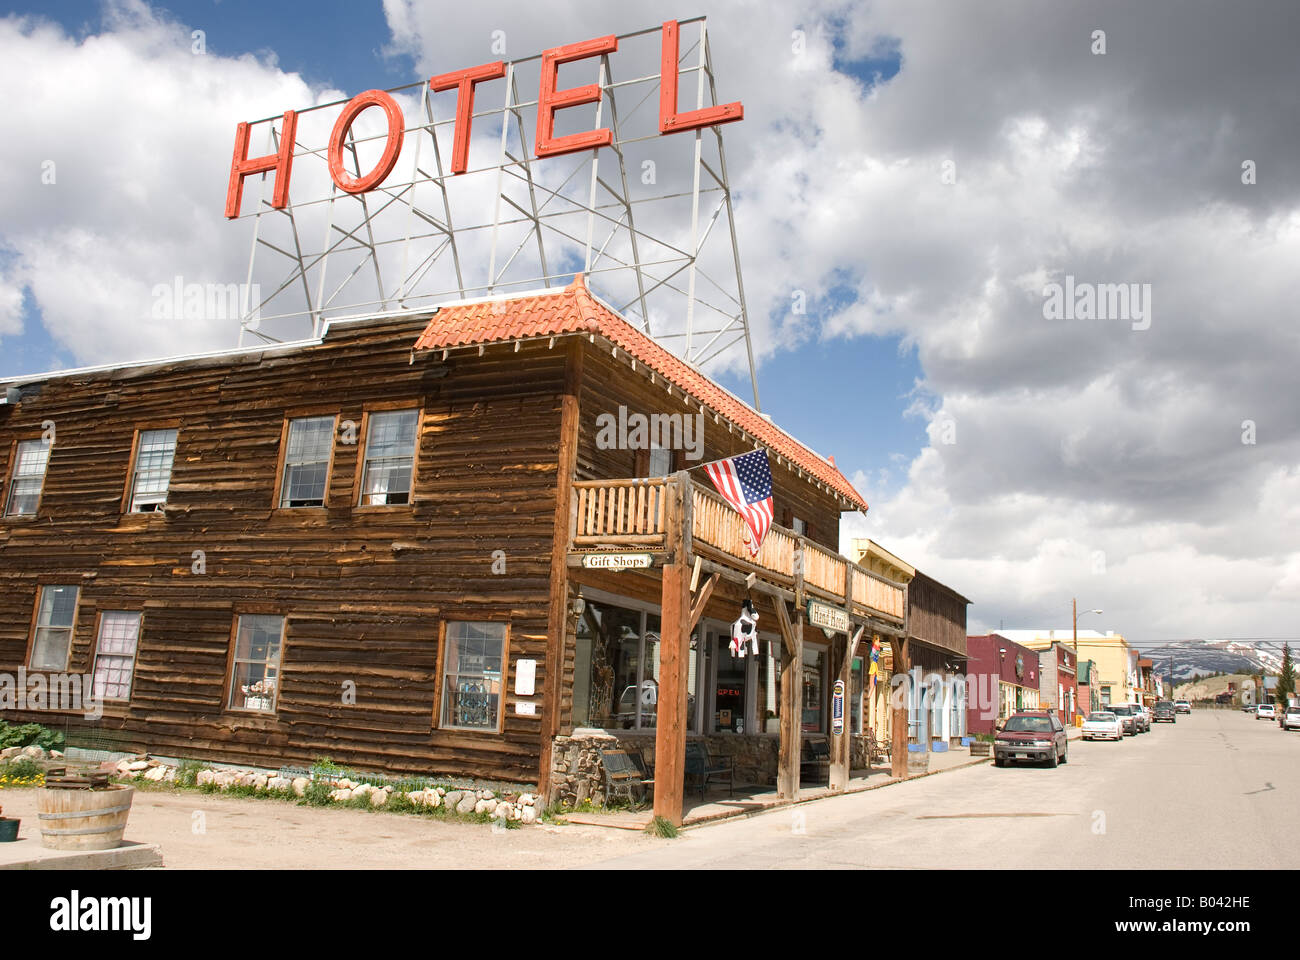 Old hotel on historical street in Fairplay, Colorado, USA - Stock Image